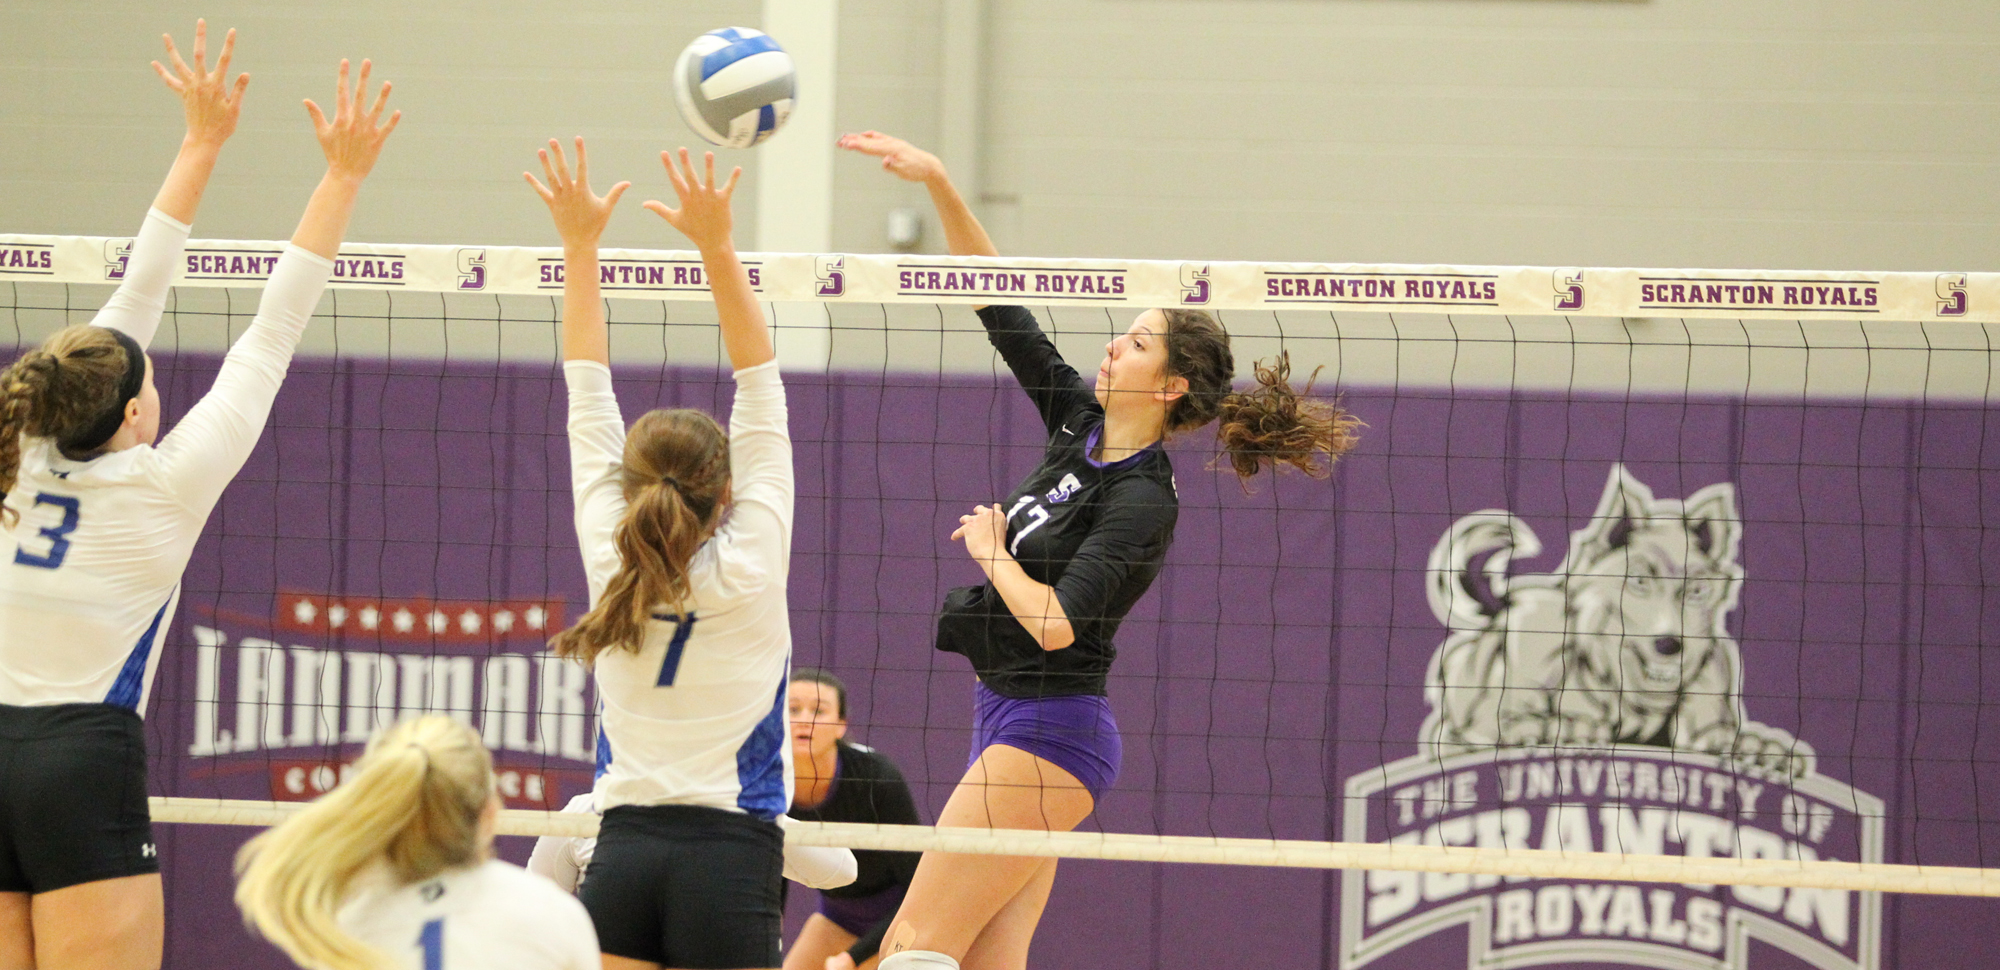 Eryn Boken had eight kills and four aces in Scranton's win over Elizabethtown on Saturday as the Royals swept its first two Landmark Conference matches of the season.